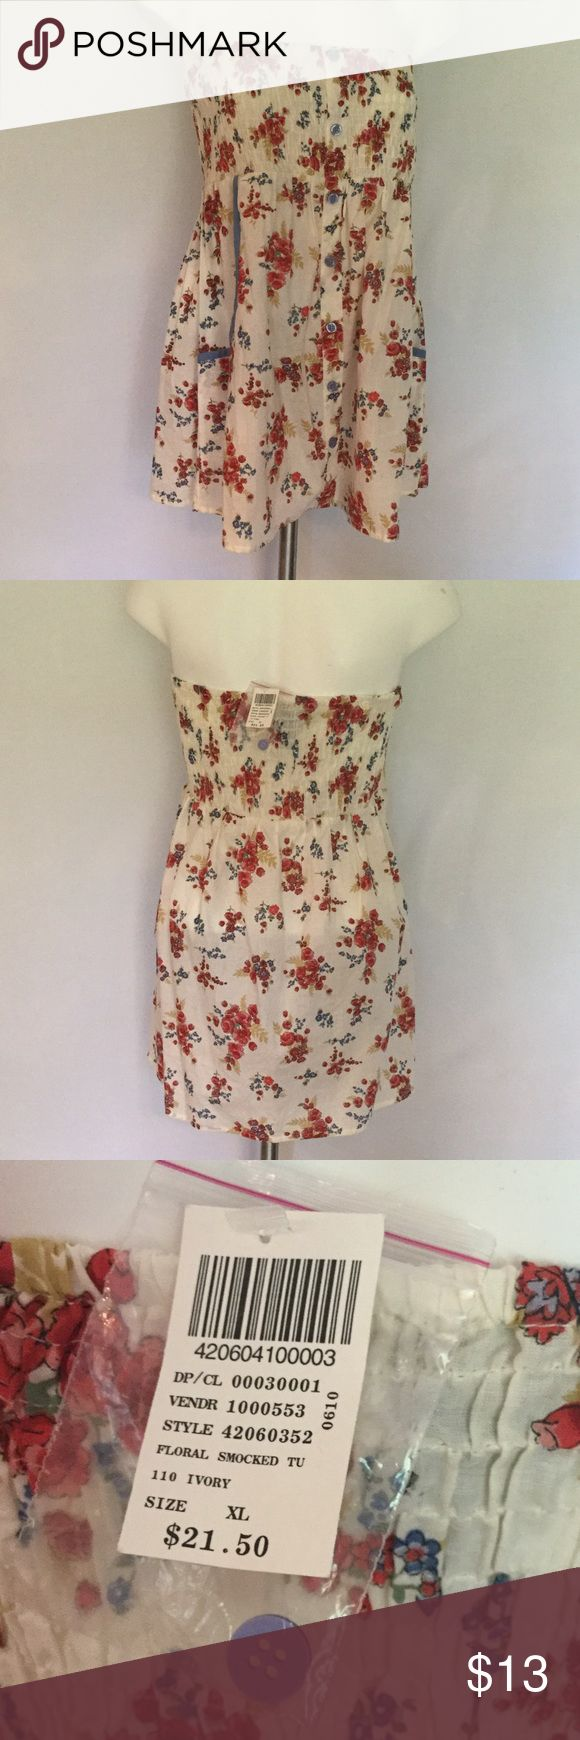 Wet Seal Floral Smock Top 🍂 Wet Seal top in baby doll smock top style. Elastic top with flowy bottom. Two side accent pockets. NWT Size XL red, pink, blue, tan, green and white background Wet Seal Tops